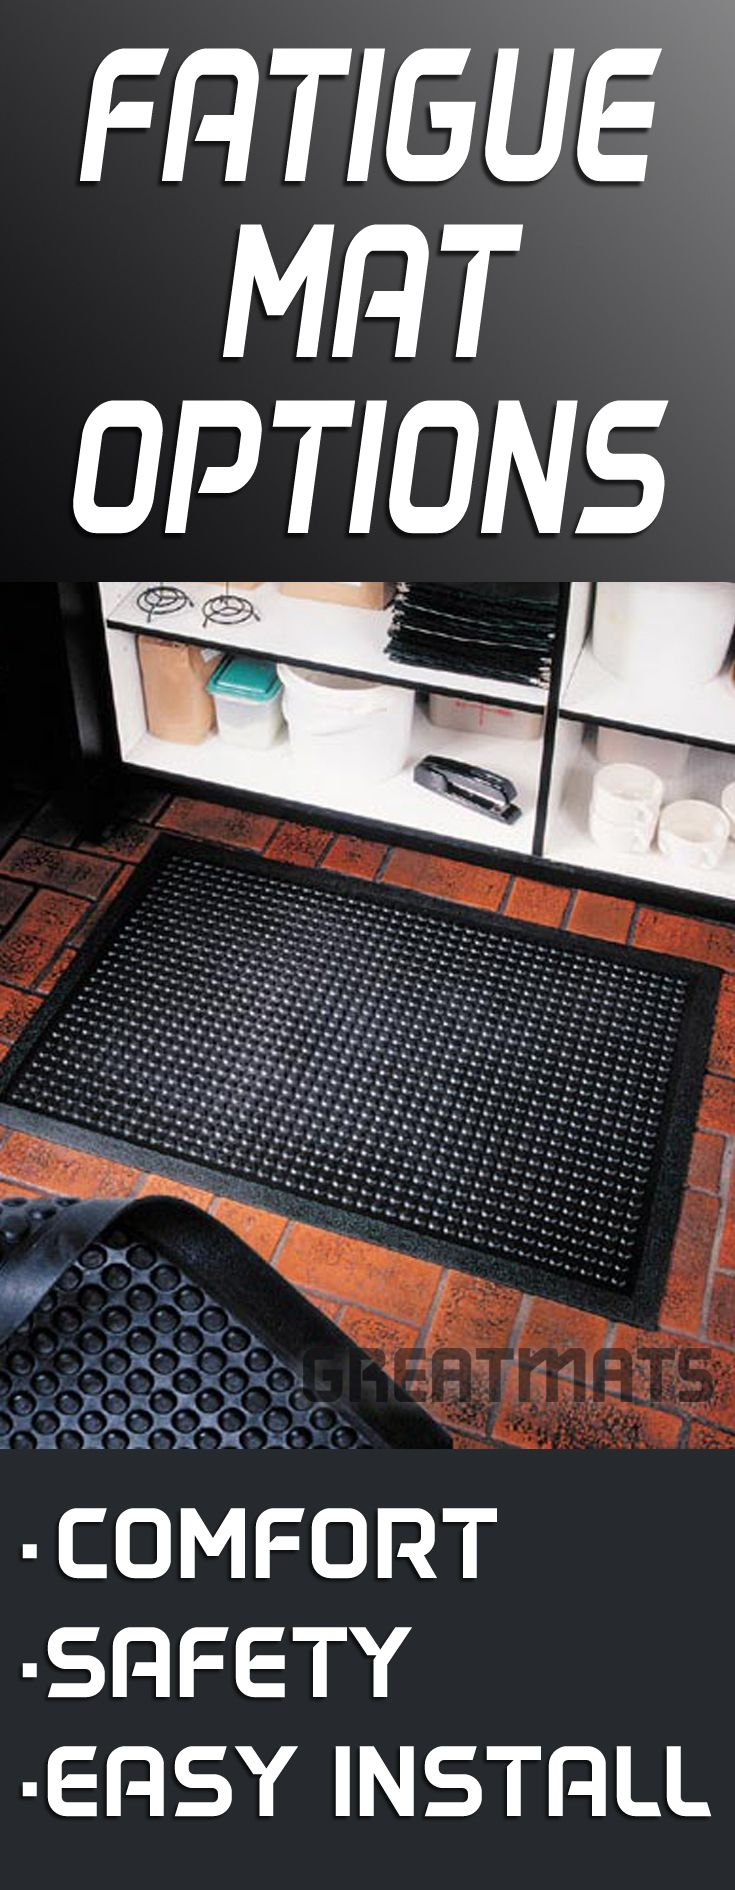 Rubber floor mats standing - Find Fatigue Mats For Industrial And Manufacturing Anti Fatigue Mat Installations With Safety Borders Use Rubber Fatigue Mats For Standing Work Mats